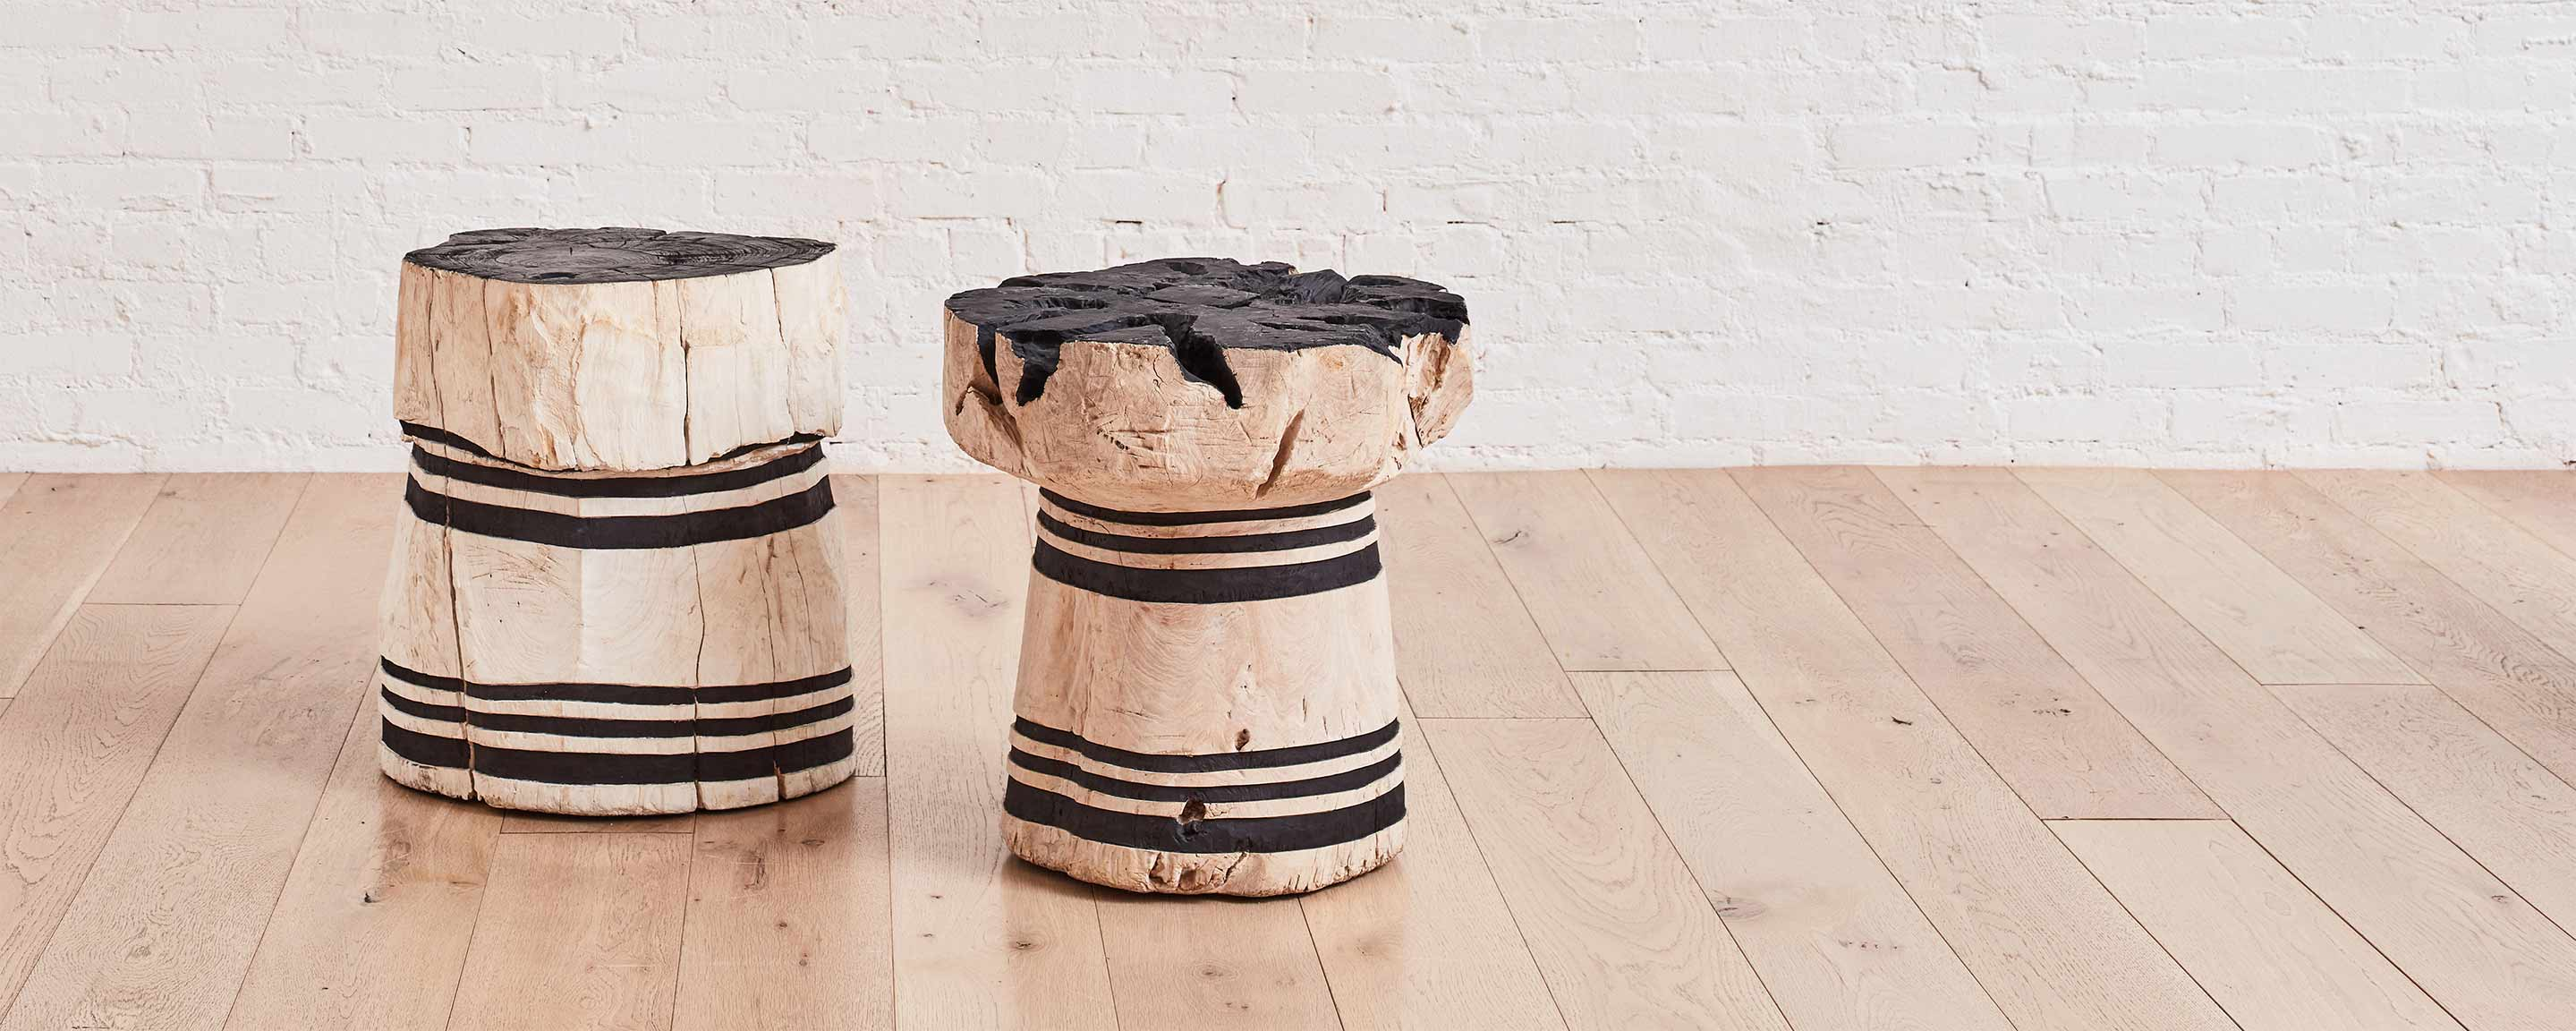 lesung teak striped stool